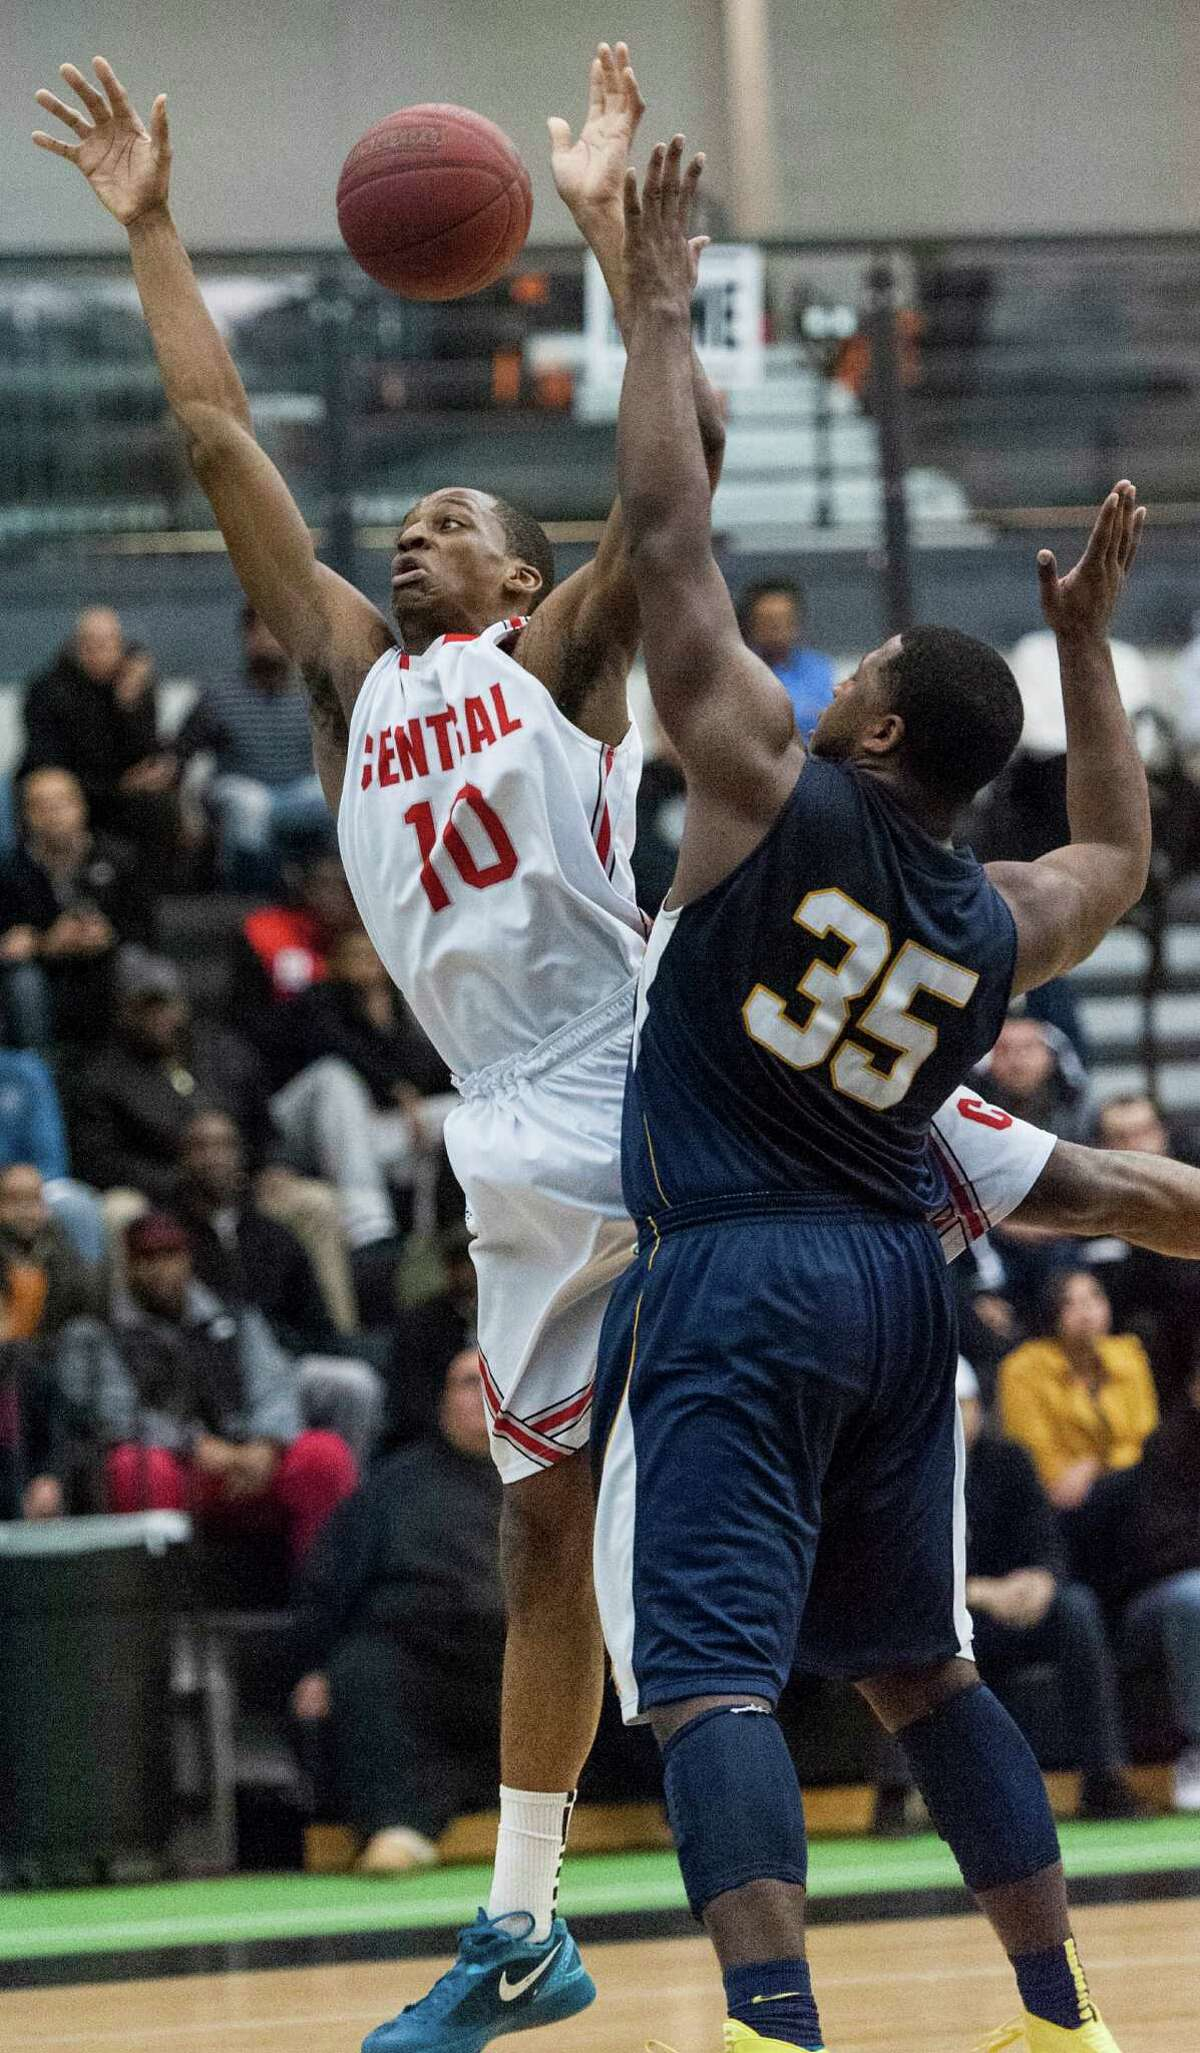 Bridgeport Central high school's Sha'quan Bretoux and Ledyard high school's Darnay Gray go after a loose ball during a CIAC class LL semifinal boys basketball tournament game played at the Floyd Little Athletic Center, New Haven, CT on Wednesday, March, 19th, 2014